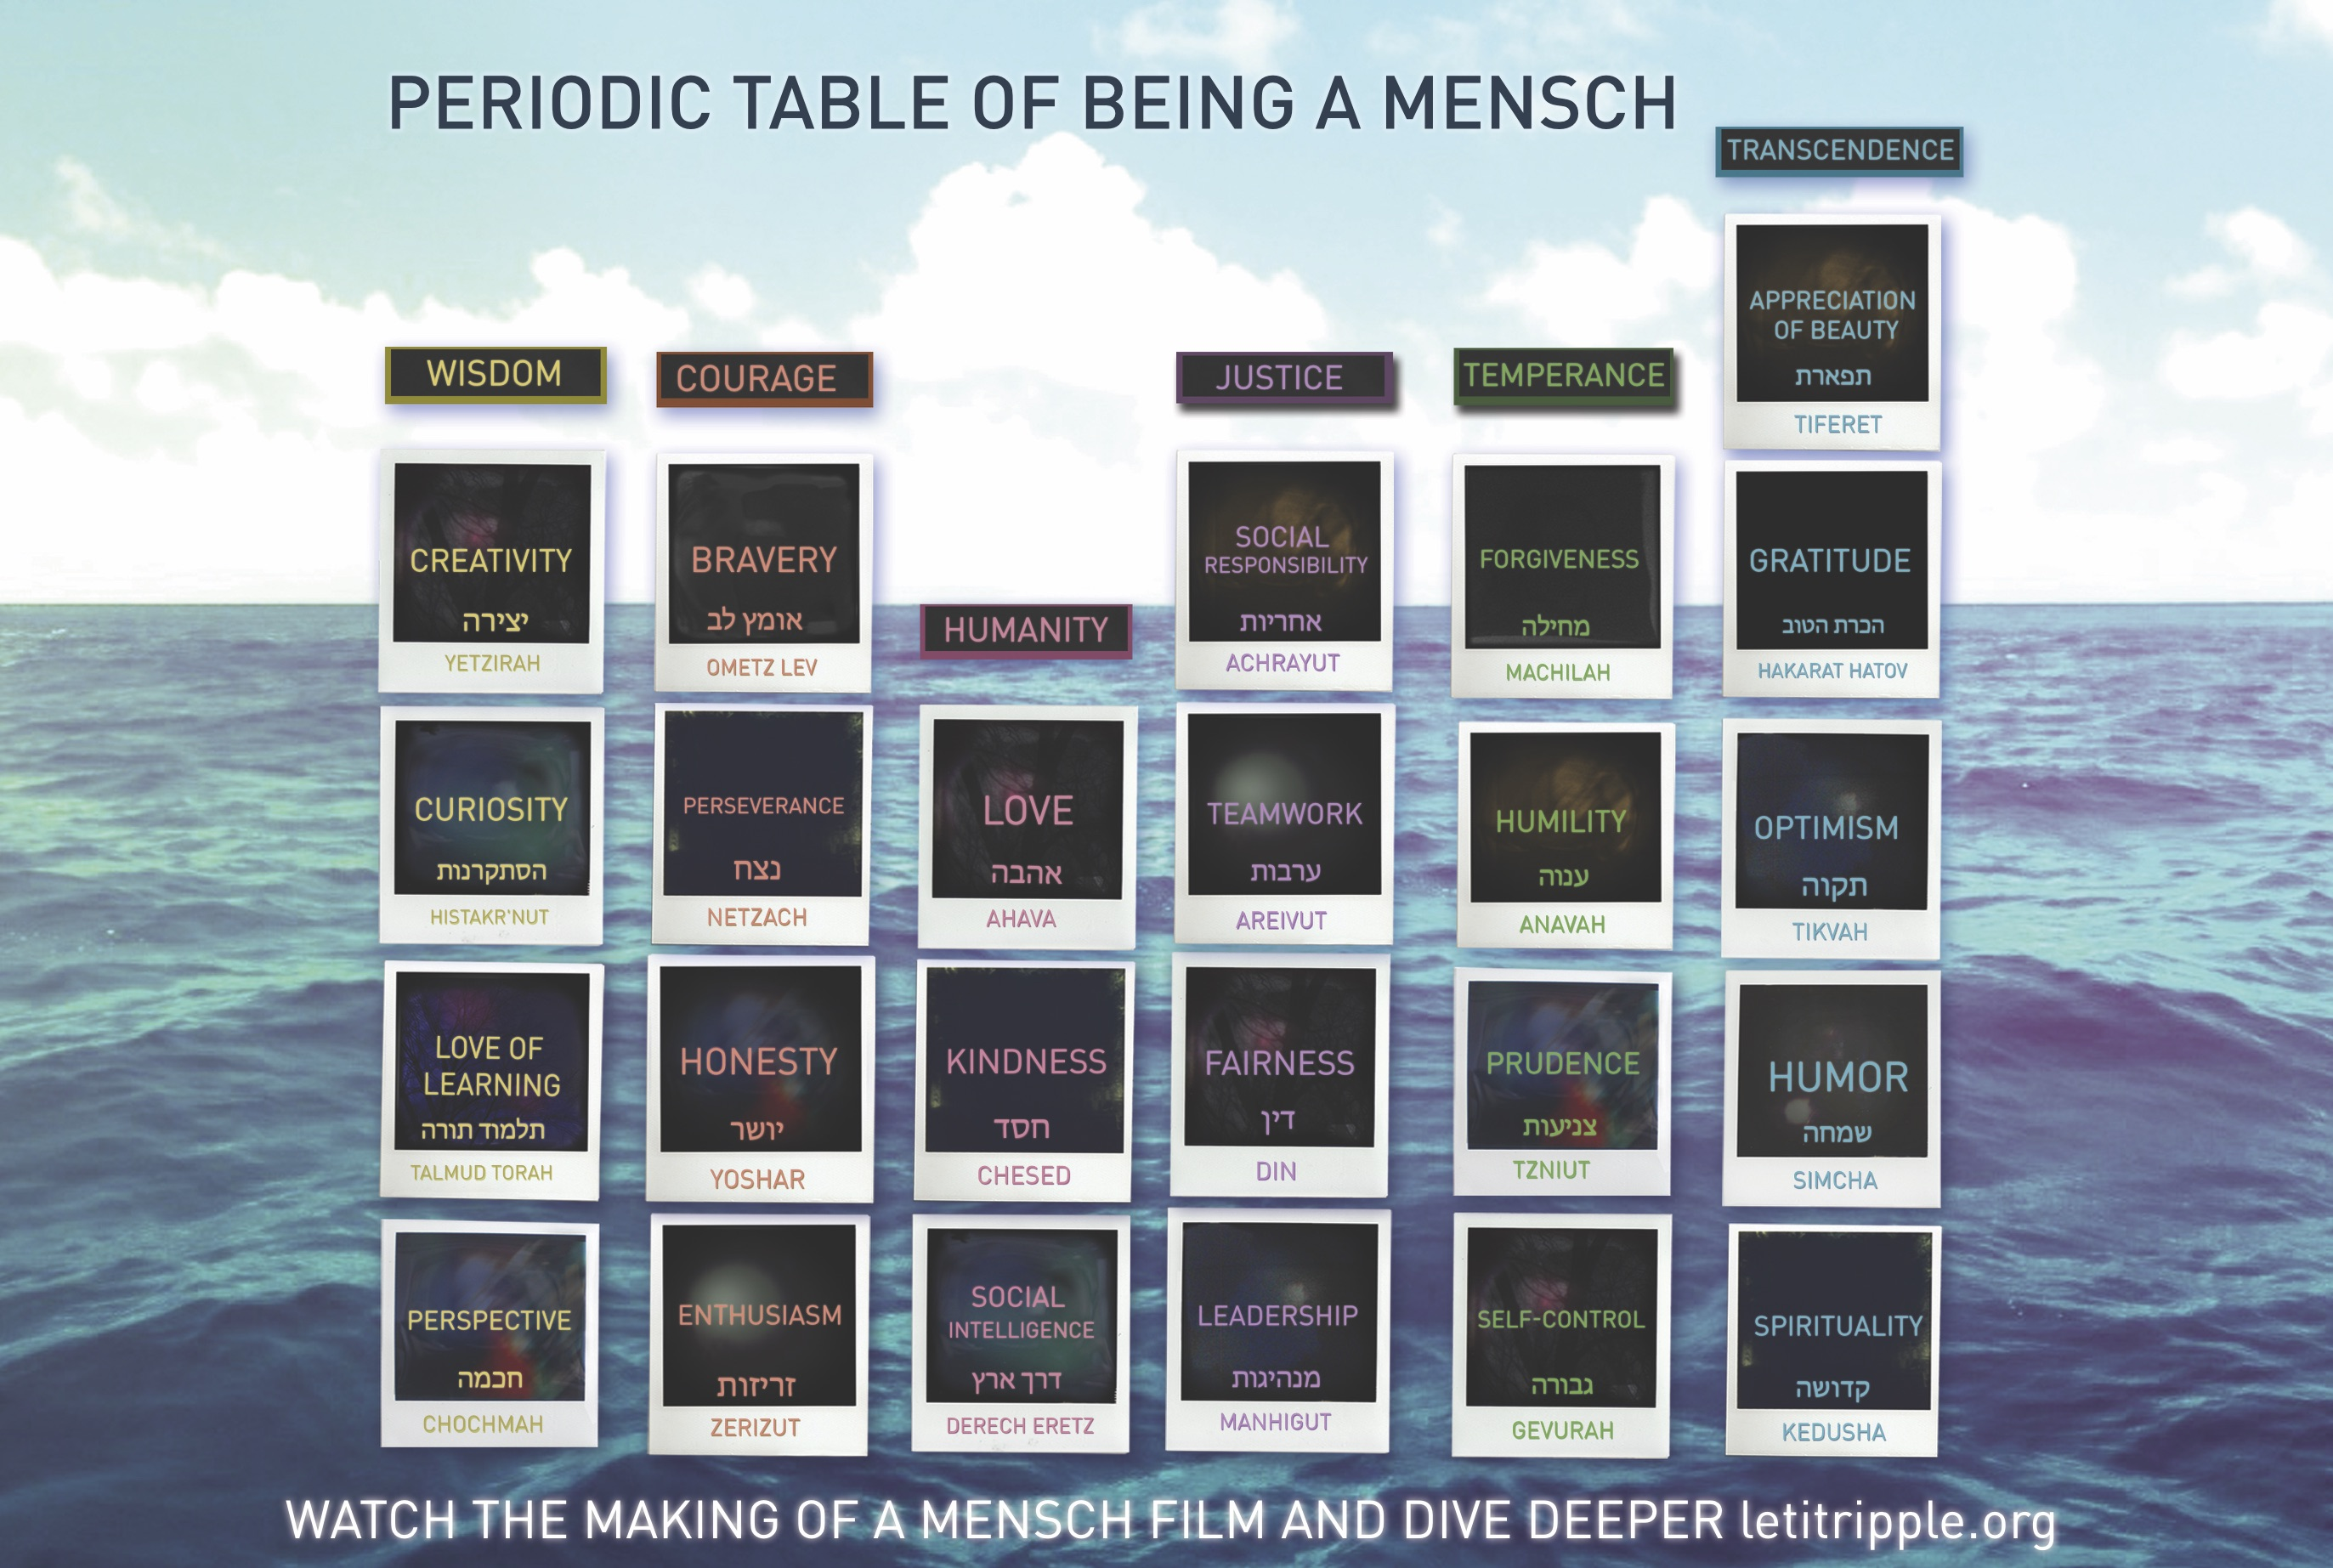 https://s3.amazonaws.com/letitripple-media/Downloads/Periodic+Table+of+Being+a+Mensch.jpg